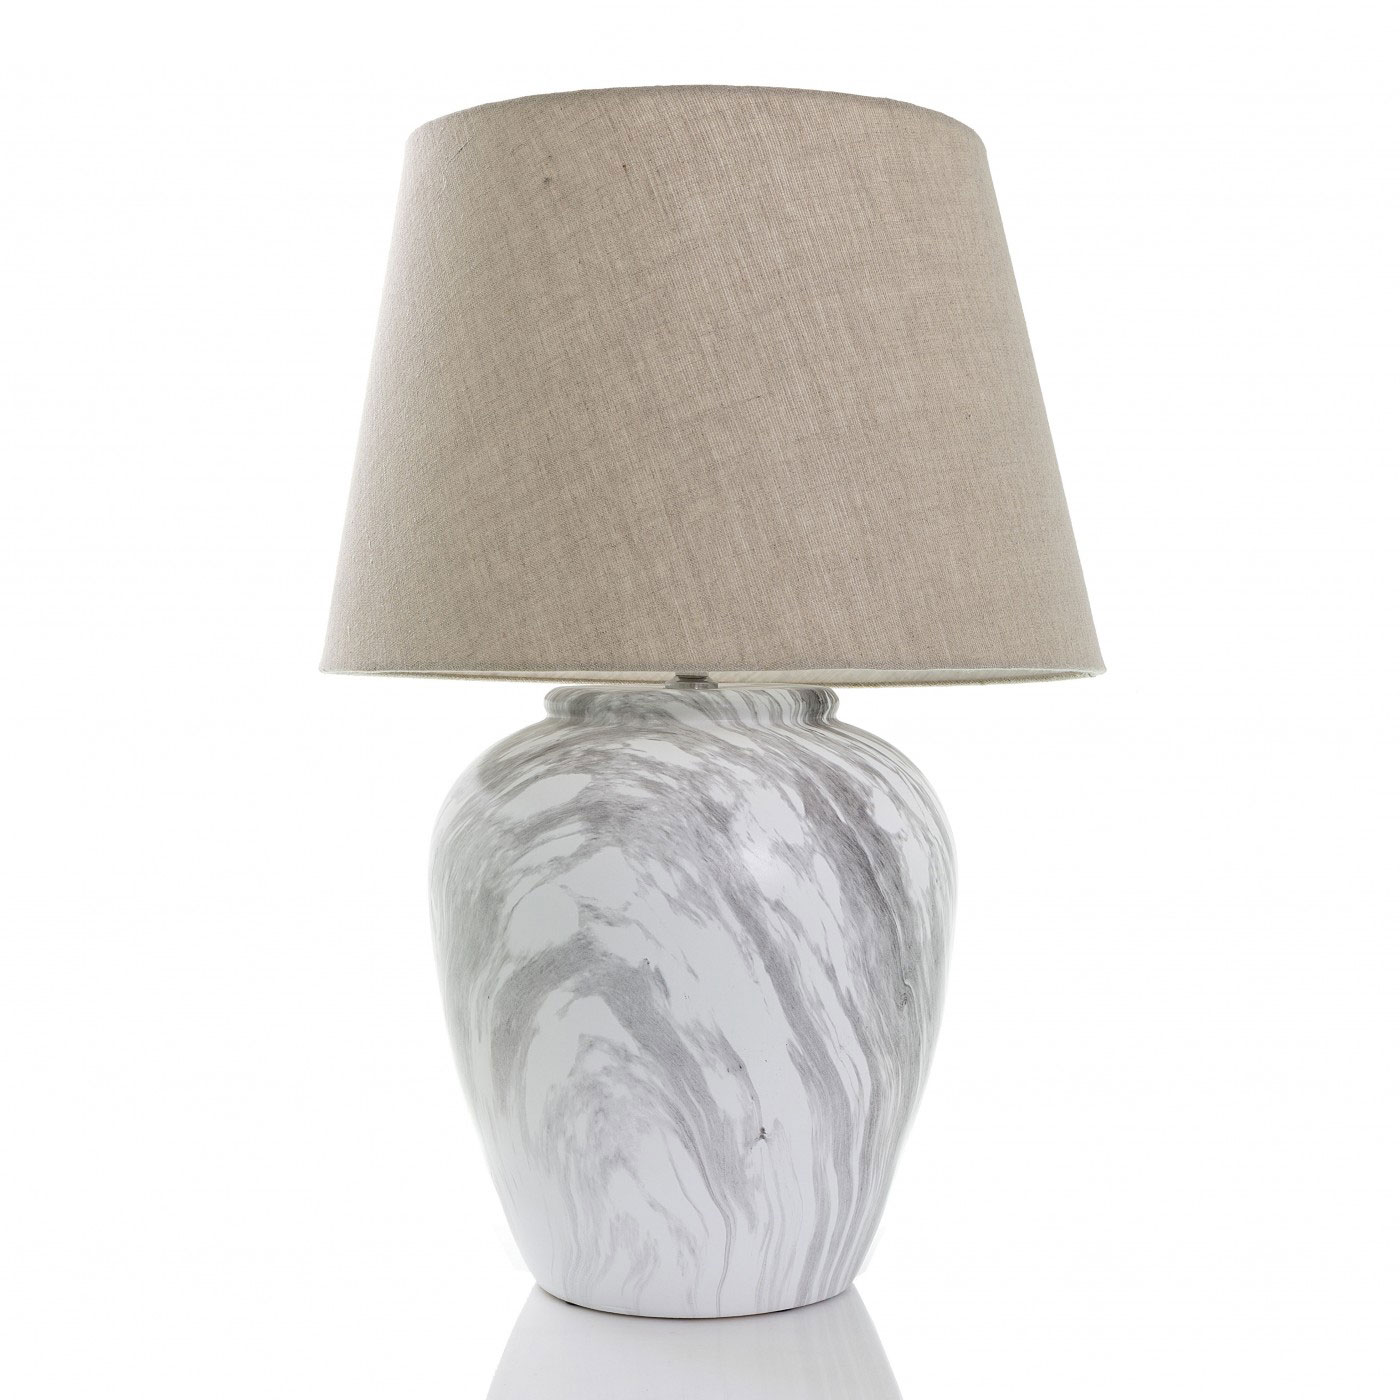 White Marble Lamp Base With Shade